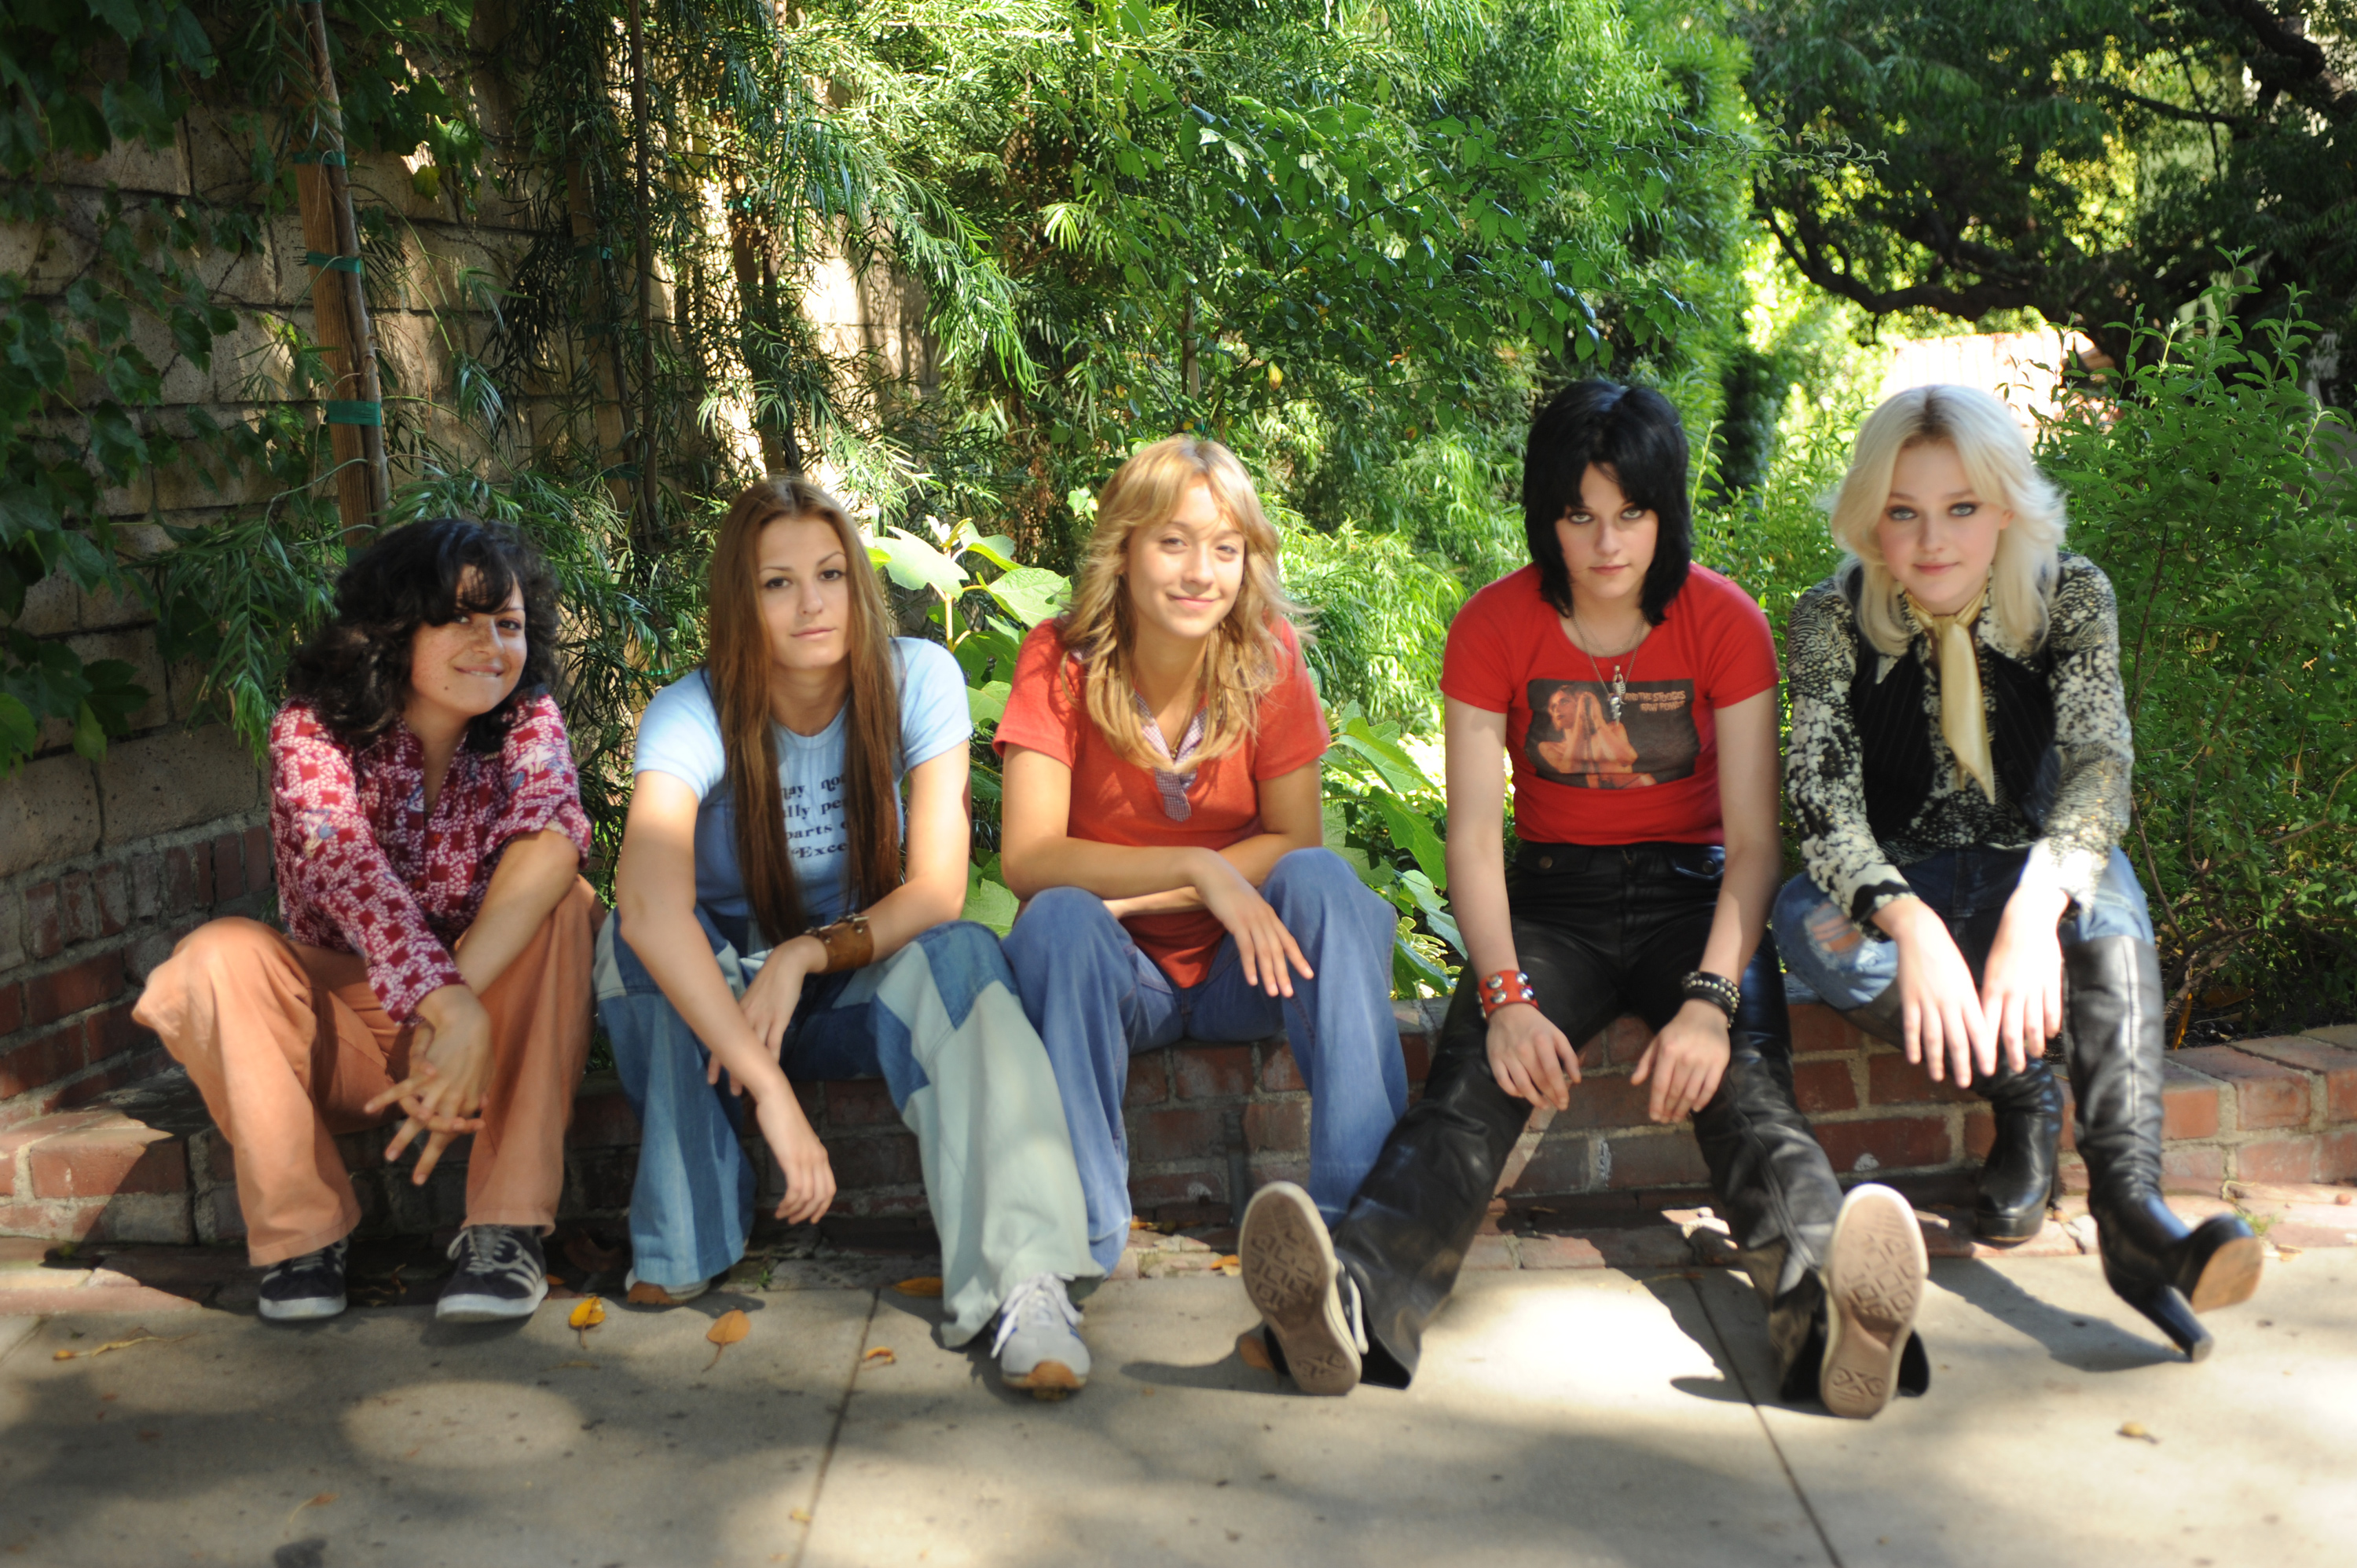 Images from THE RUNAWAYS Starring Kristen Stewart and Dakota FanningKristen Stewart And Dakota Fanning In The Runaways